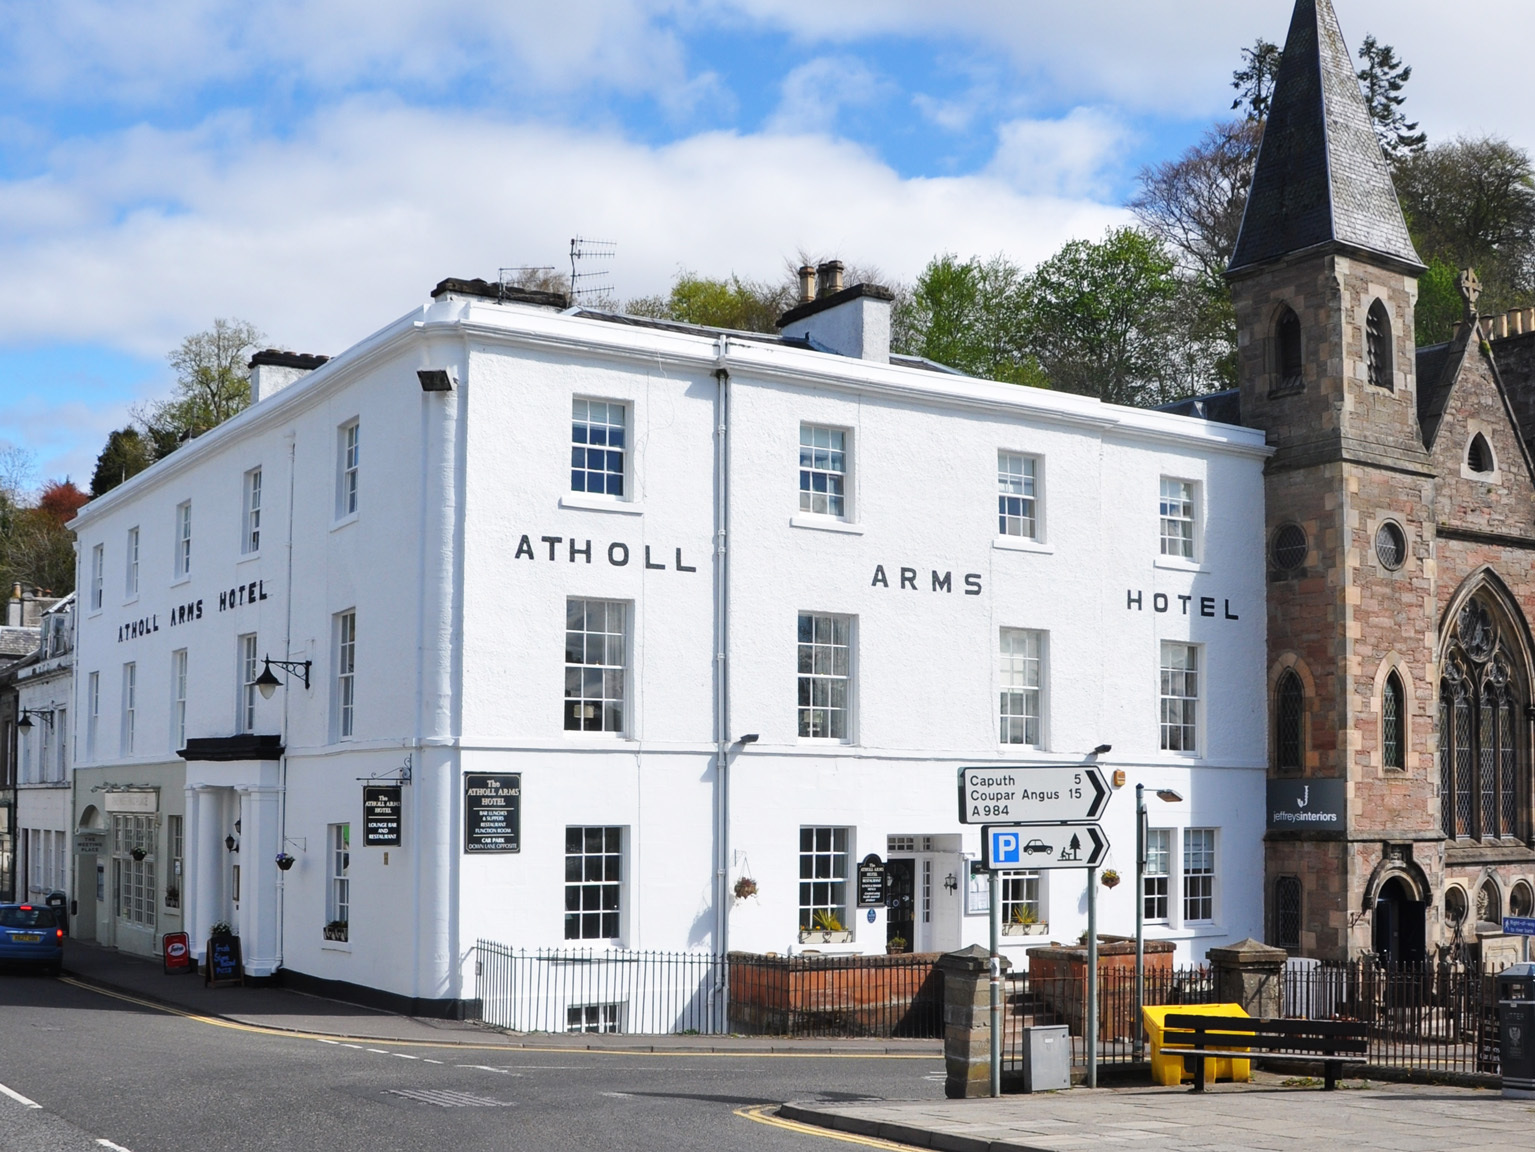 The Atholl Arms Hotel in Dunkeld.